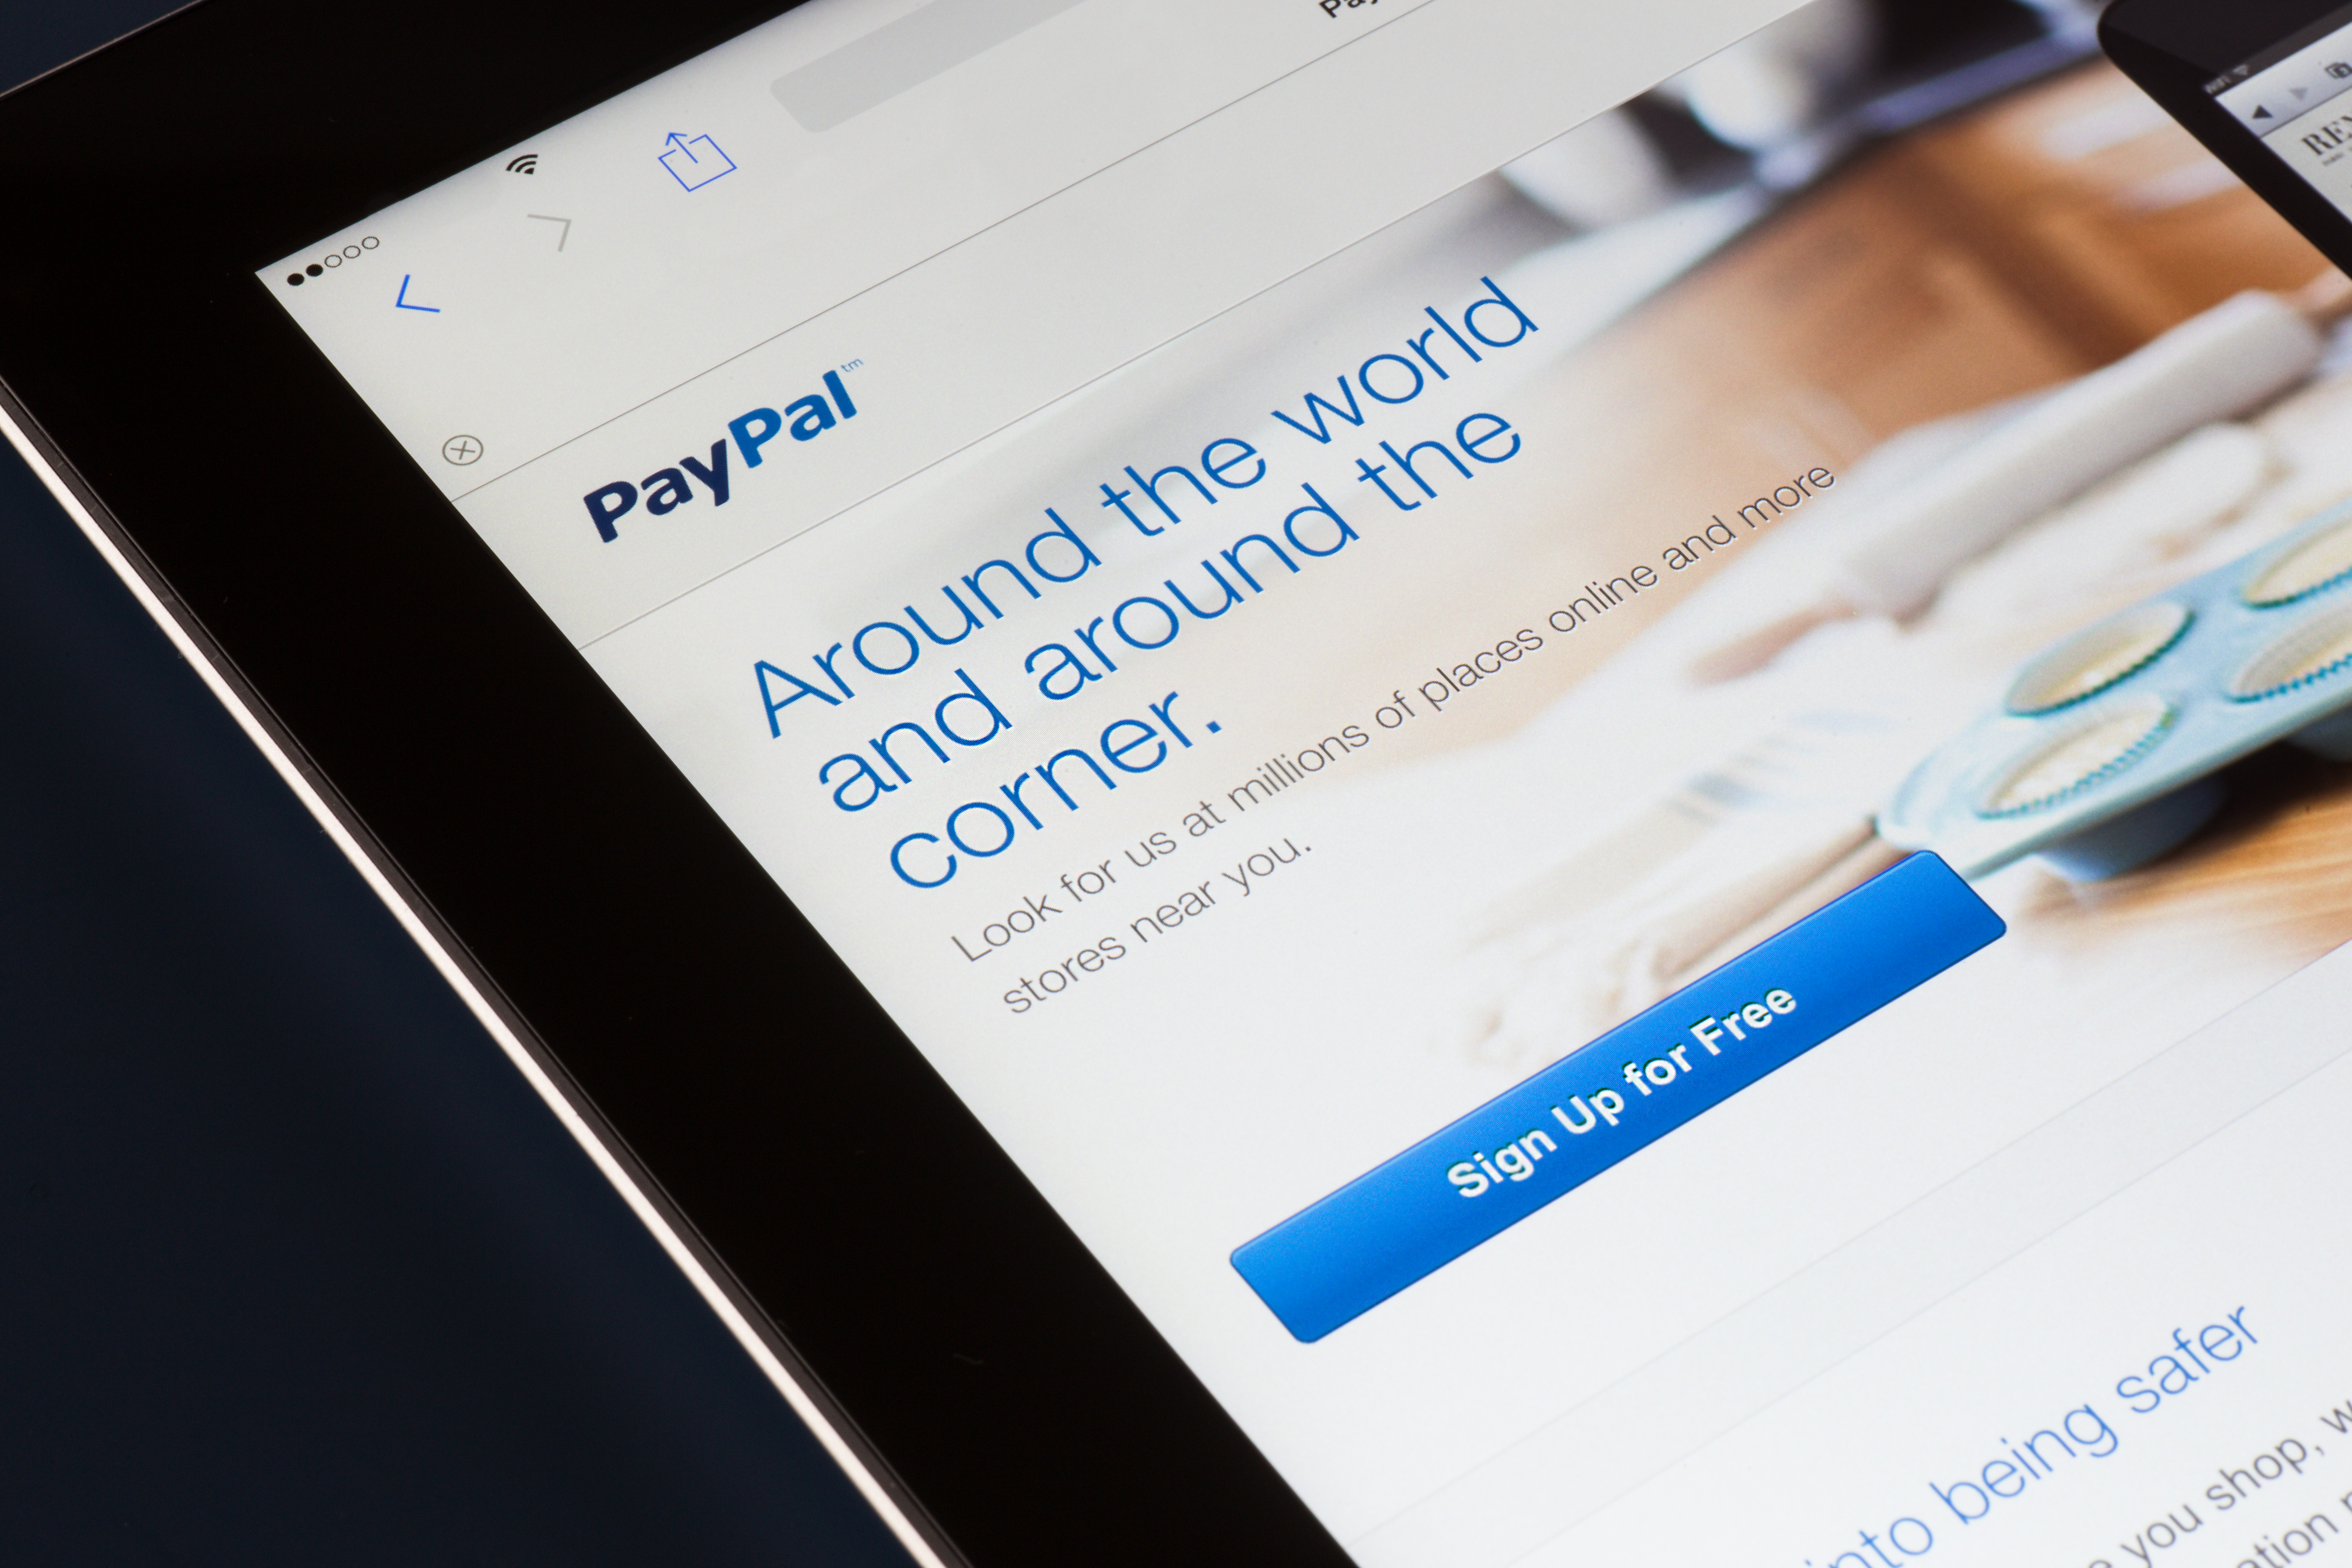 NEW YORK CITY - FEB. 3, 2014:  Paypal website displayed on tablet screen against dark background.  Established in 1999, PayPal a